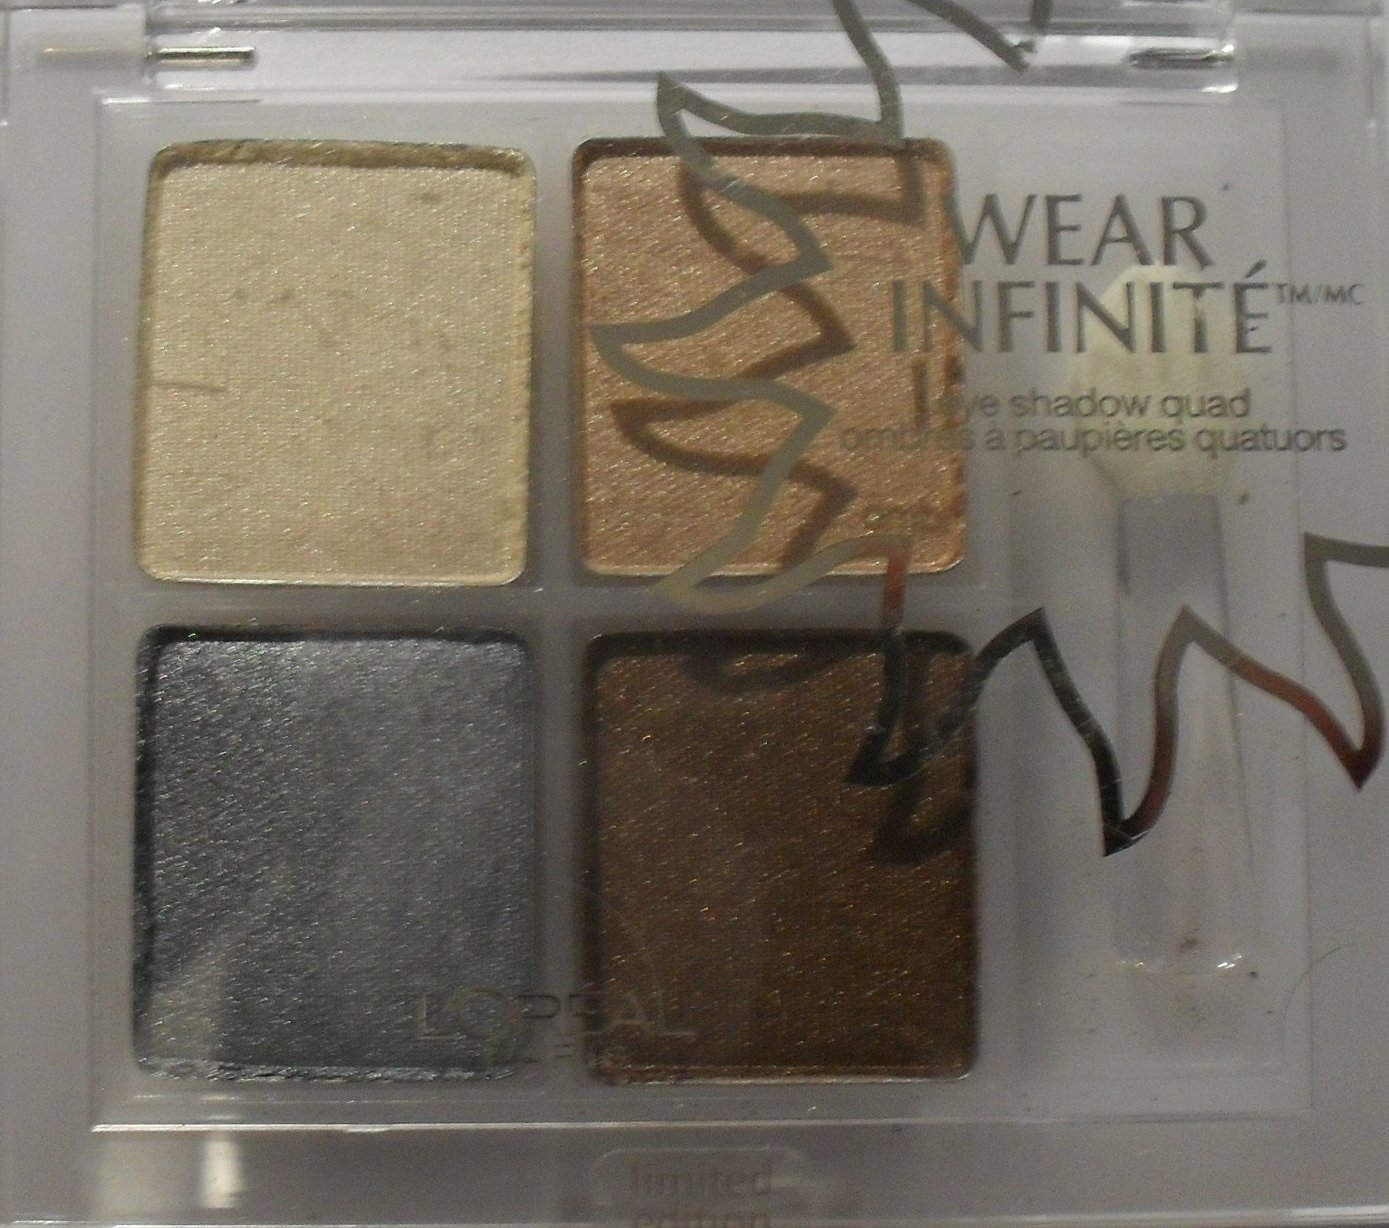 L'OREAL WEAR INFINITE EYE SHADOW QUAD #842 AQUATIC ESCAPE B0055SDE3M